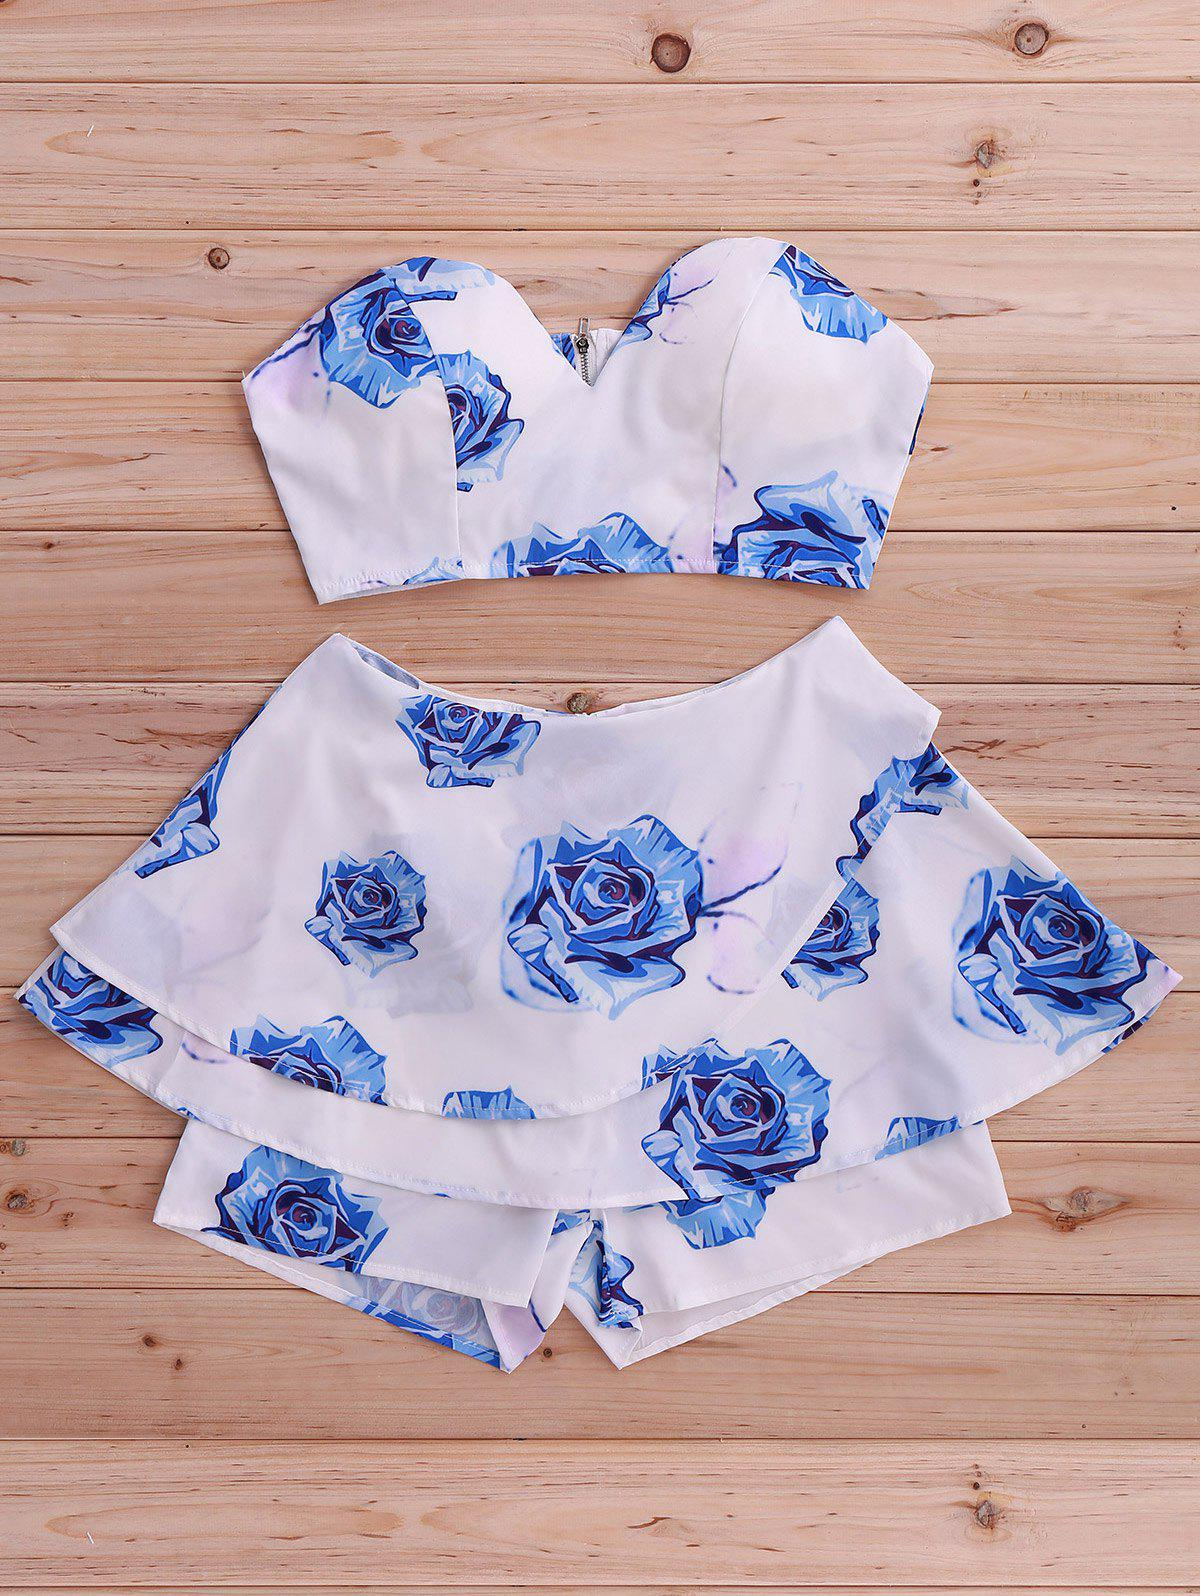 Stylish Women's Floral Print Tube Top and Skirted Shorts Set - BLUE S